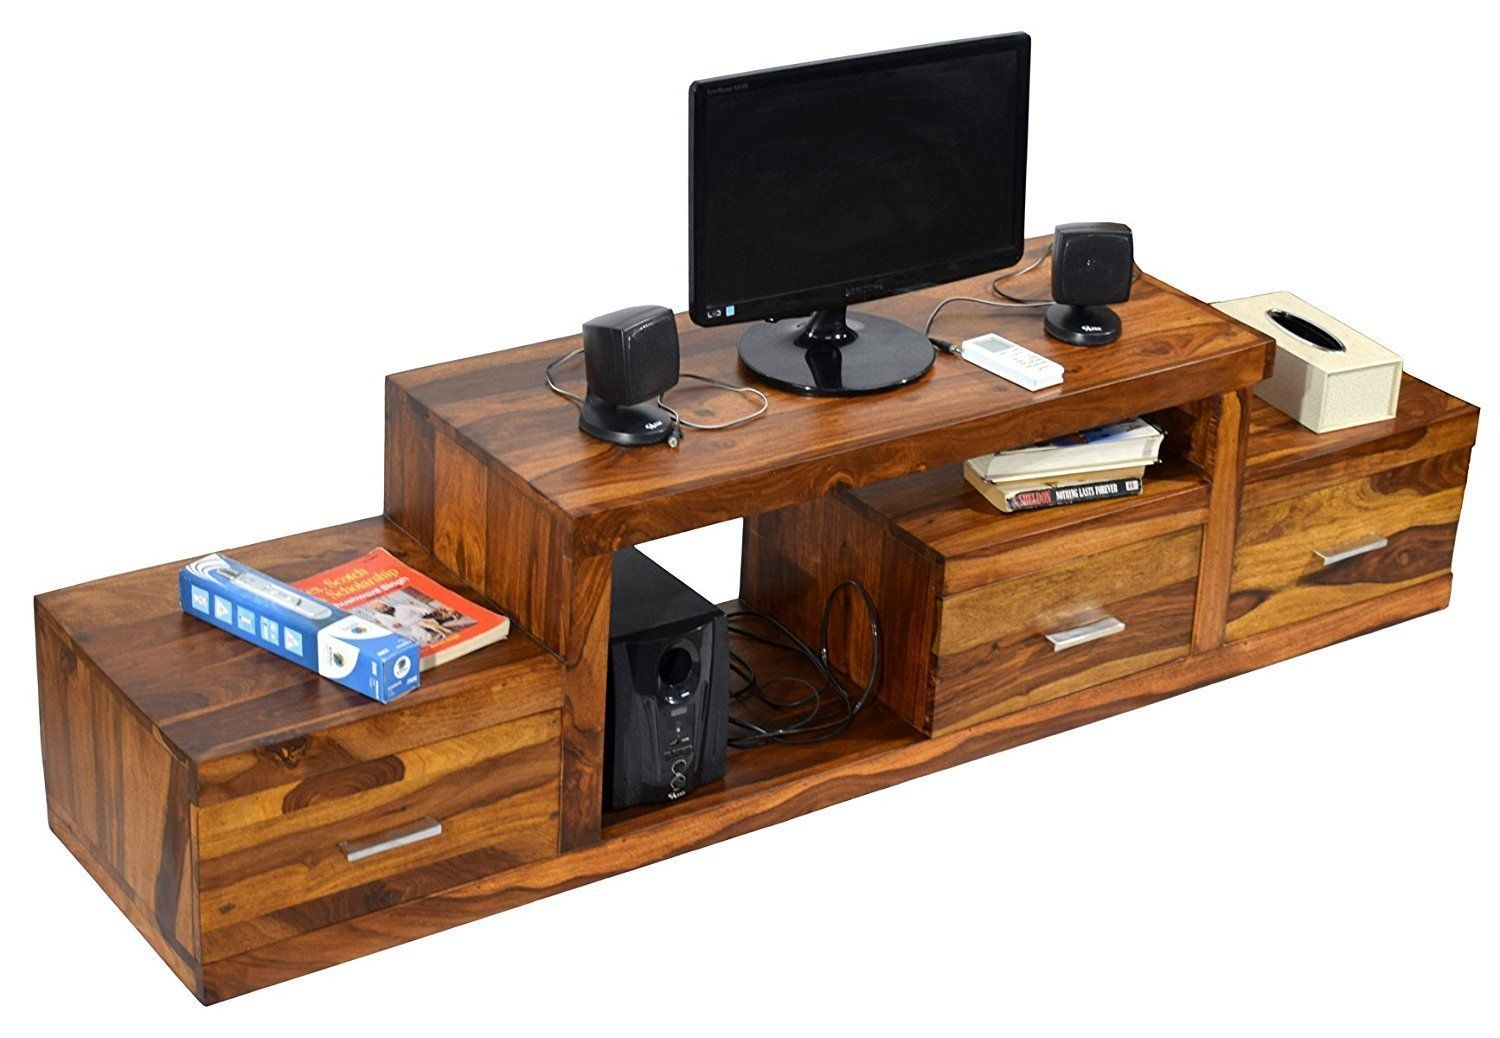 Furniture - Insignia Wood 1.75 Meter Natural Teak Finish 3 Draw Nadia TV Unit Cabinet Entertainment Stand